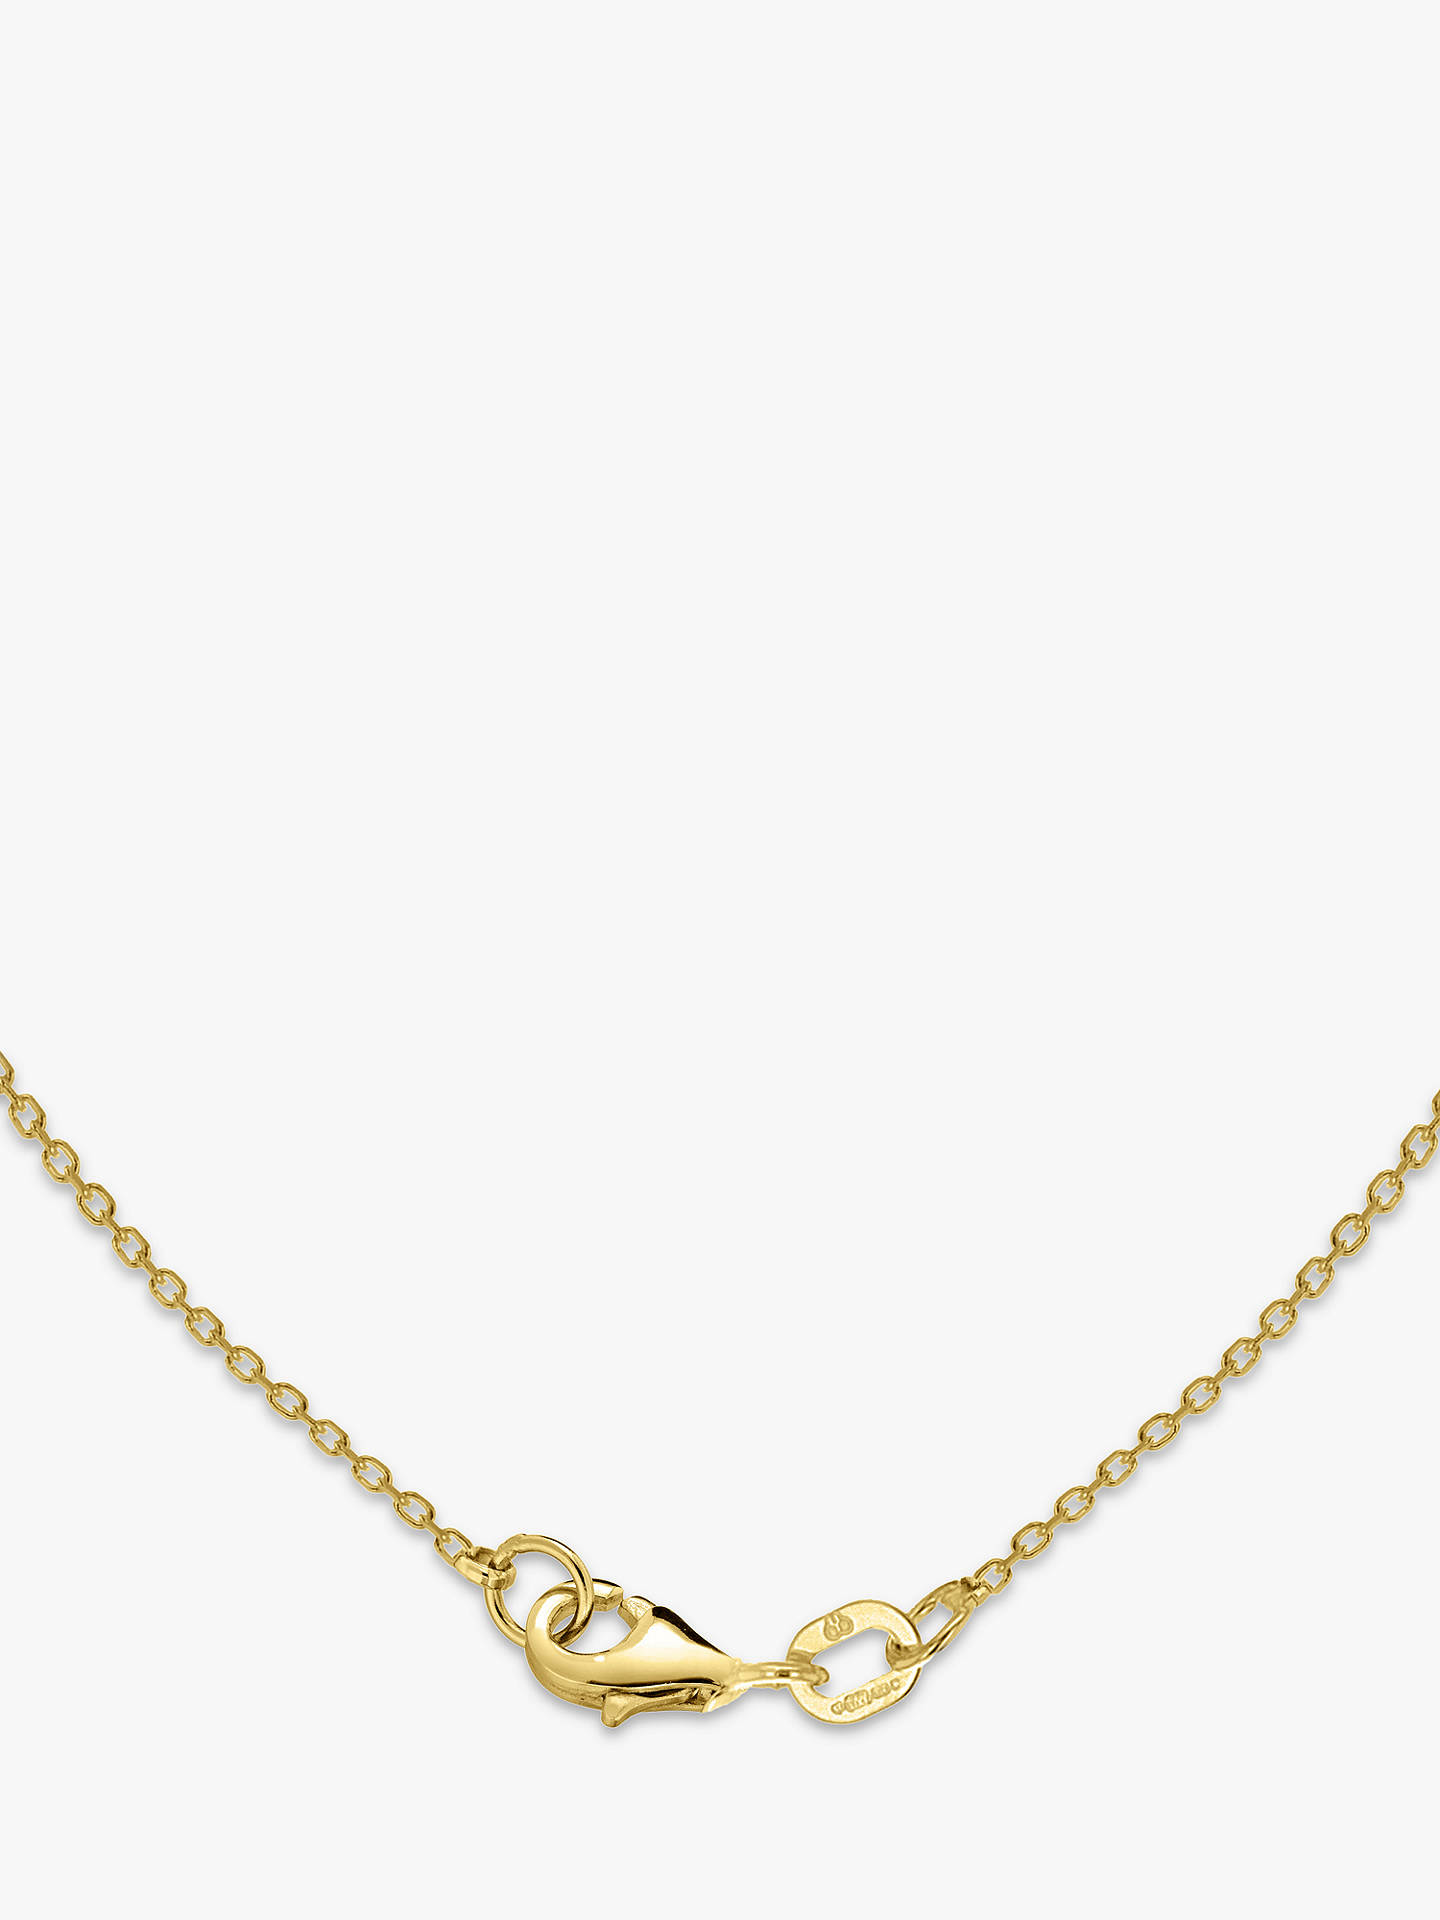 BuyIBB Personalised Small Horizontal Bar Initial Pendant Necklace, Gold Online at johnlewis.com